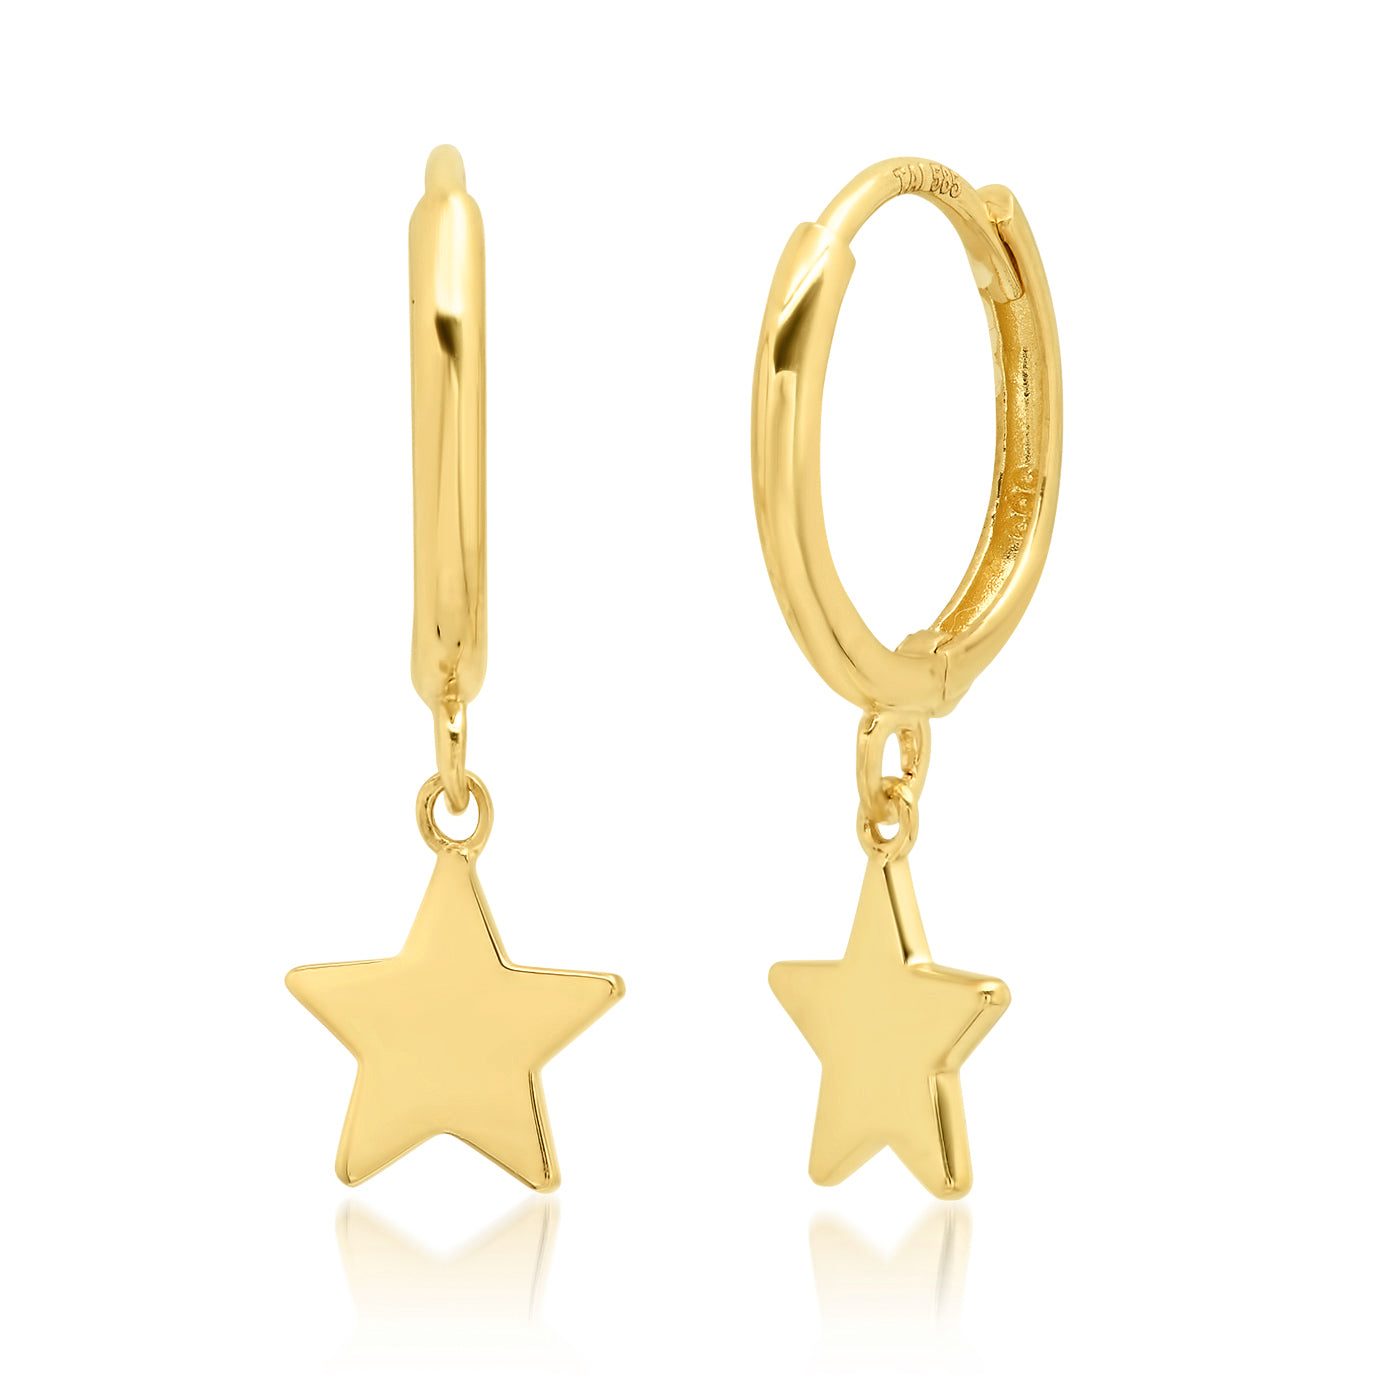 Tai Fine 14k Gold Hoops with Star Charm